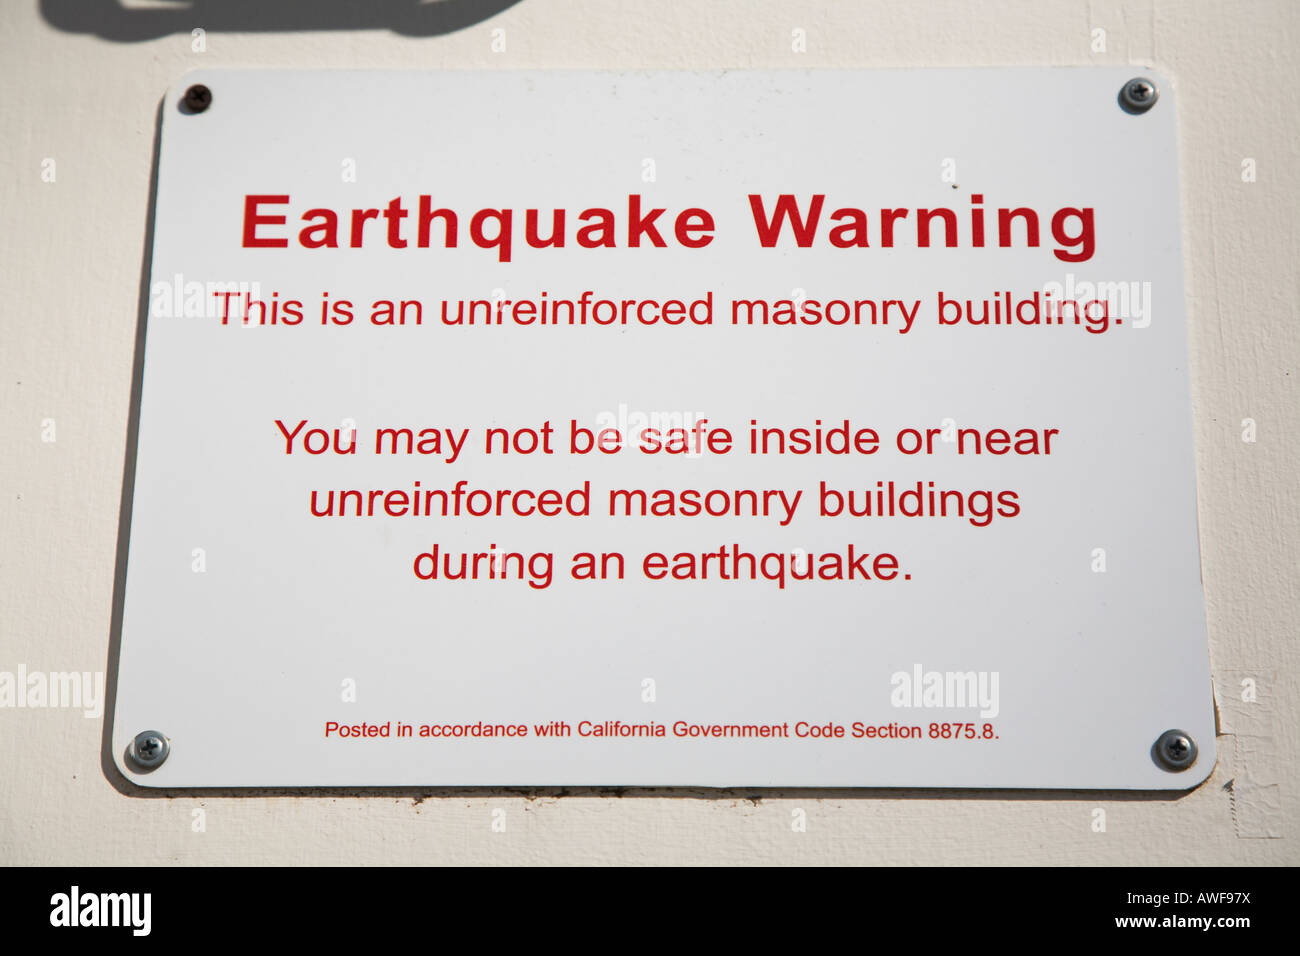 CALIFORNIA Santa Barbara Earthquake warning sign posted on unreinforced masonry building - Stock Image